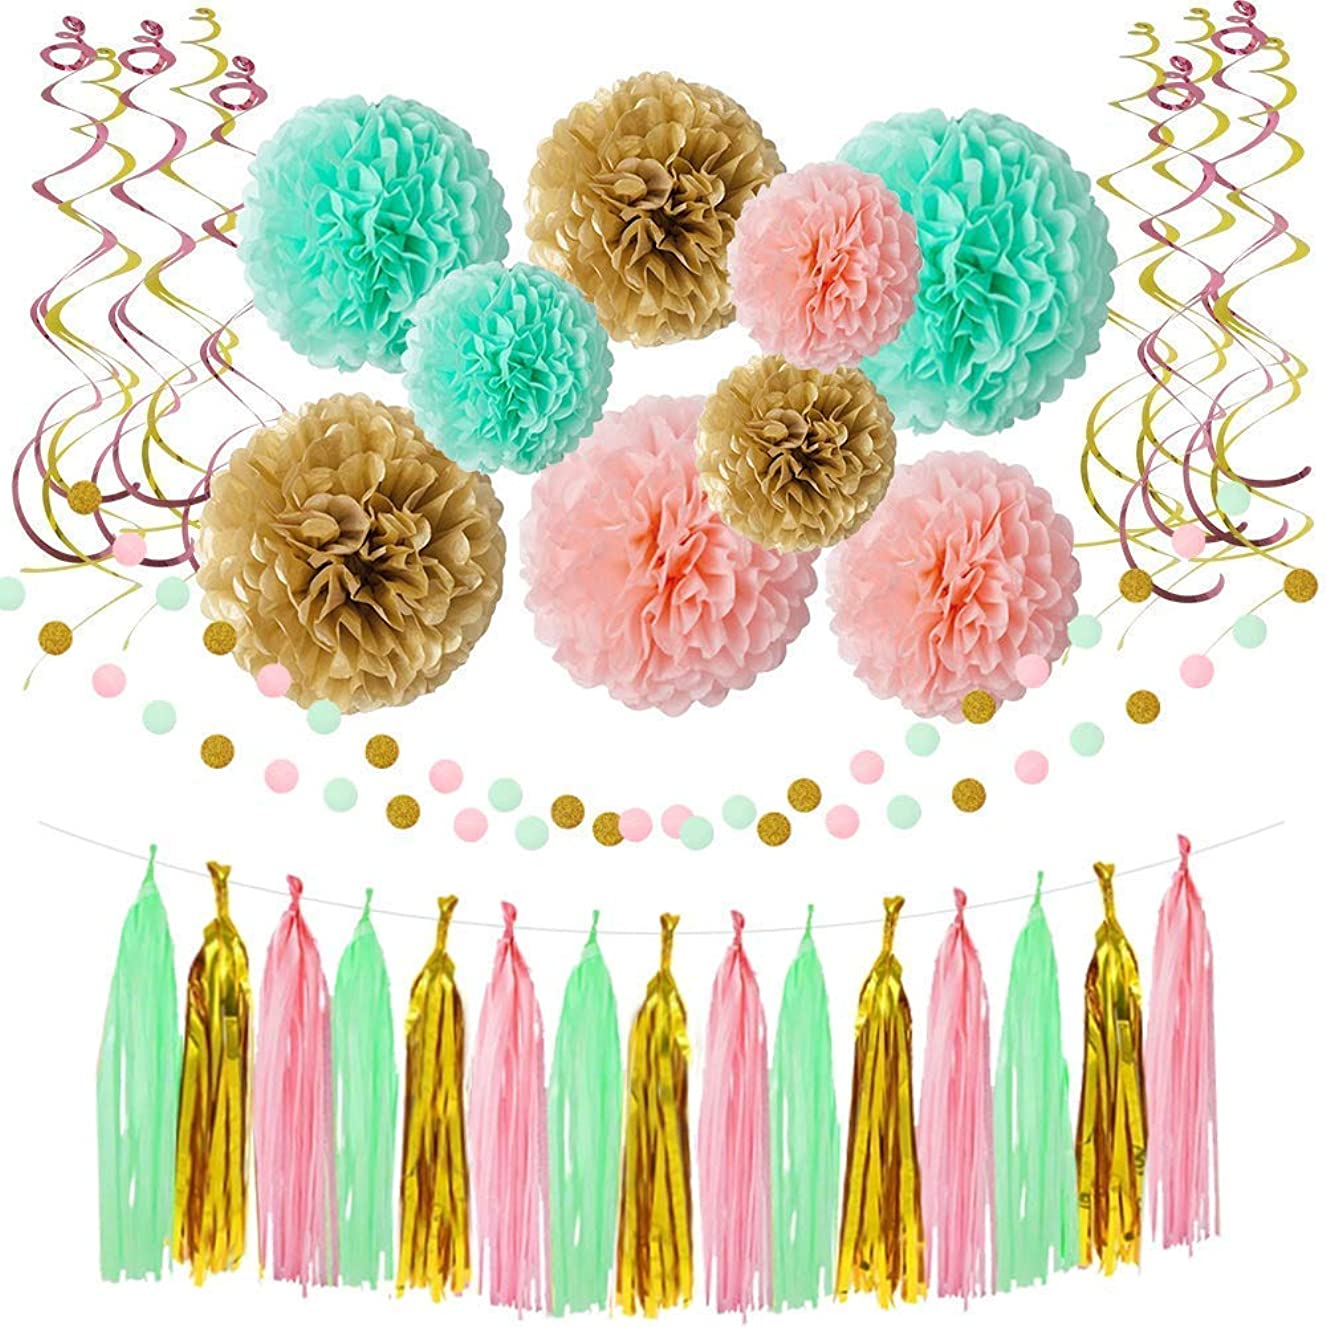 Hangnuo Gender Reveal Mint Pink and Gold Decor for Baby Shower Party with Paper Pom Poms, Tissue Tassel, Dot Garland, Hanging Swirl Banner